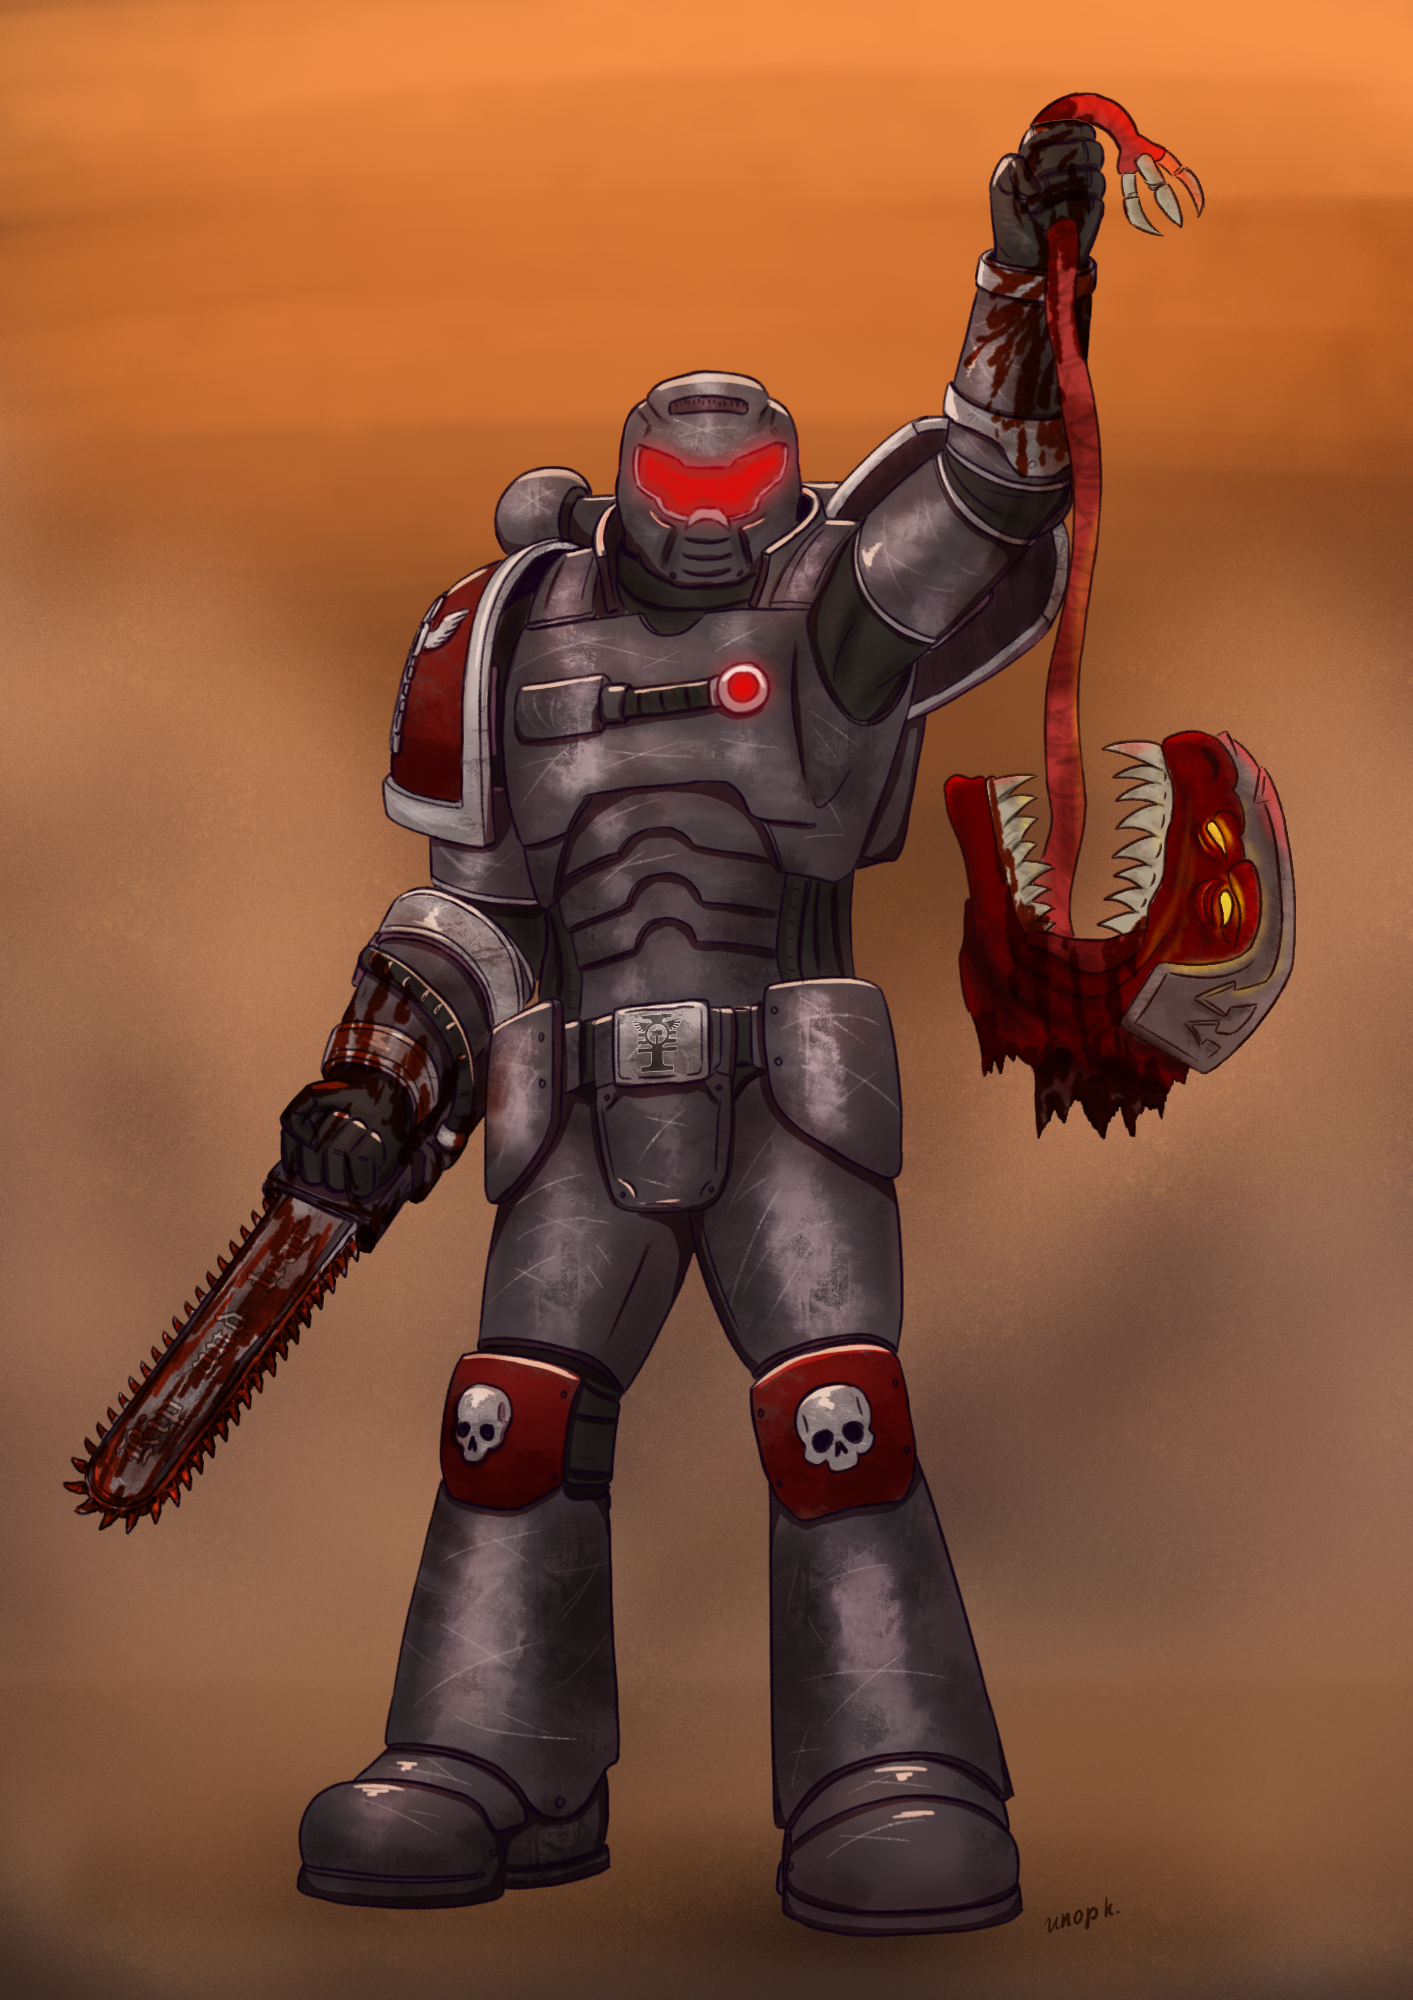 DOOM Eternal Crossover Fan art in 2020 Doom, Slayer meme